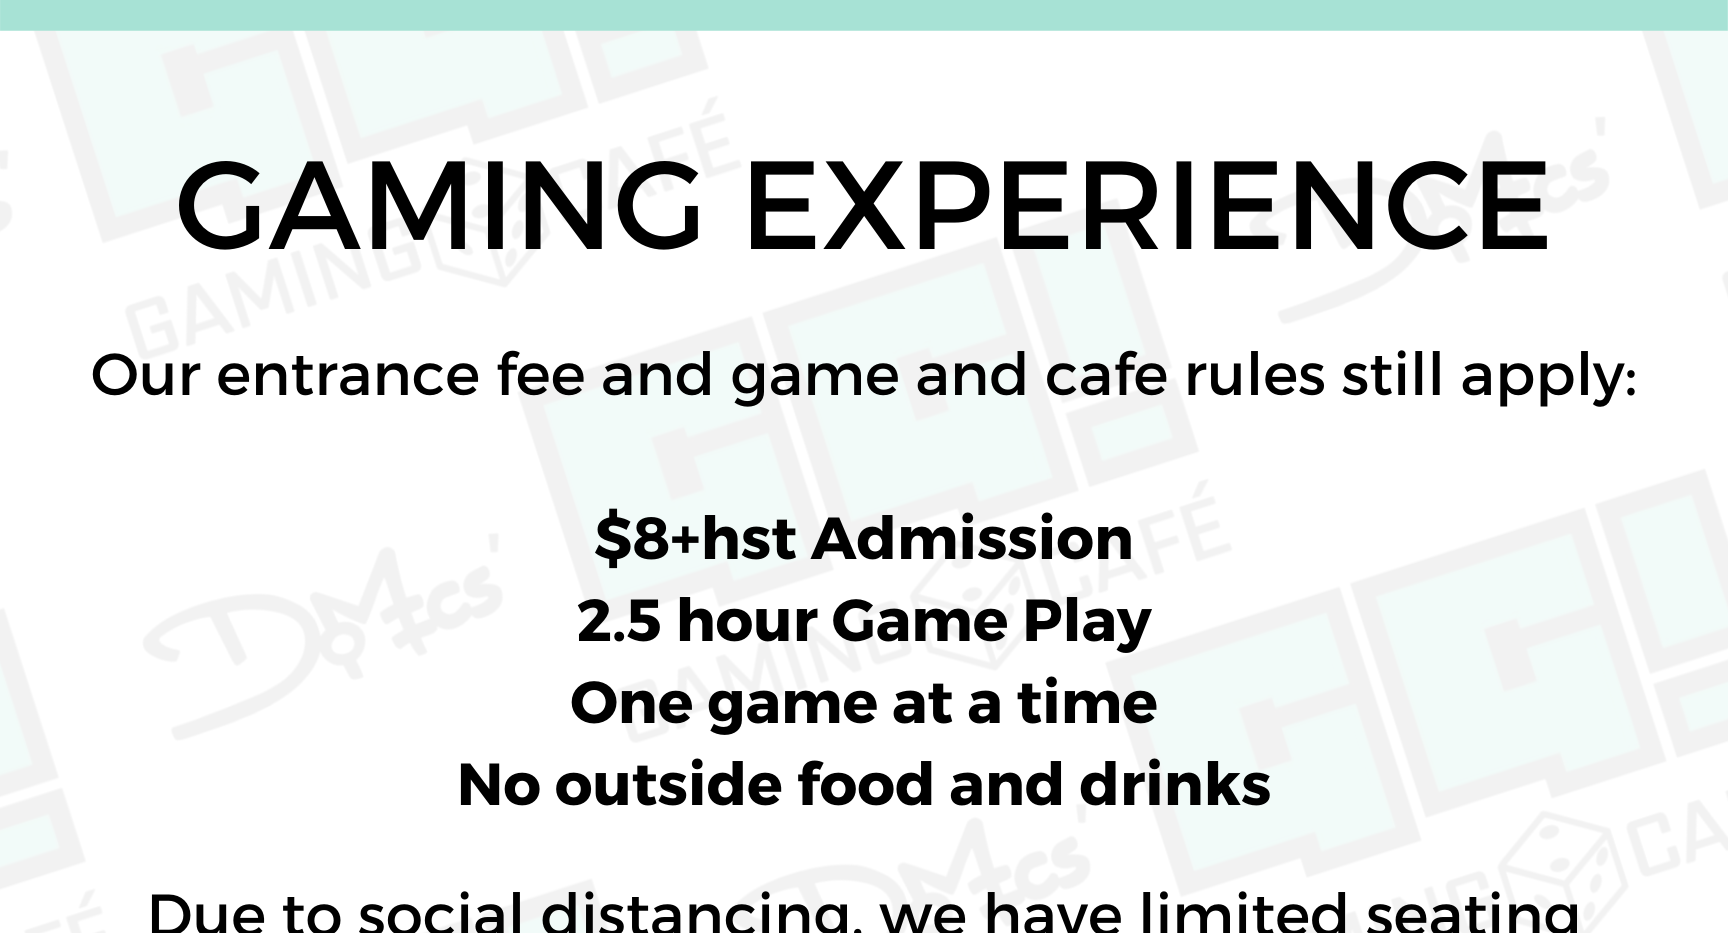 3.Gaming Experience 2